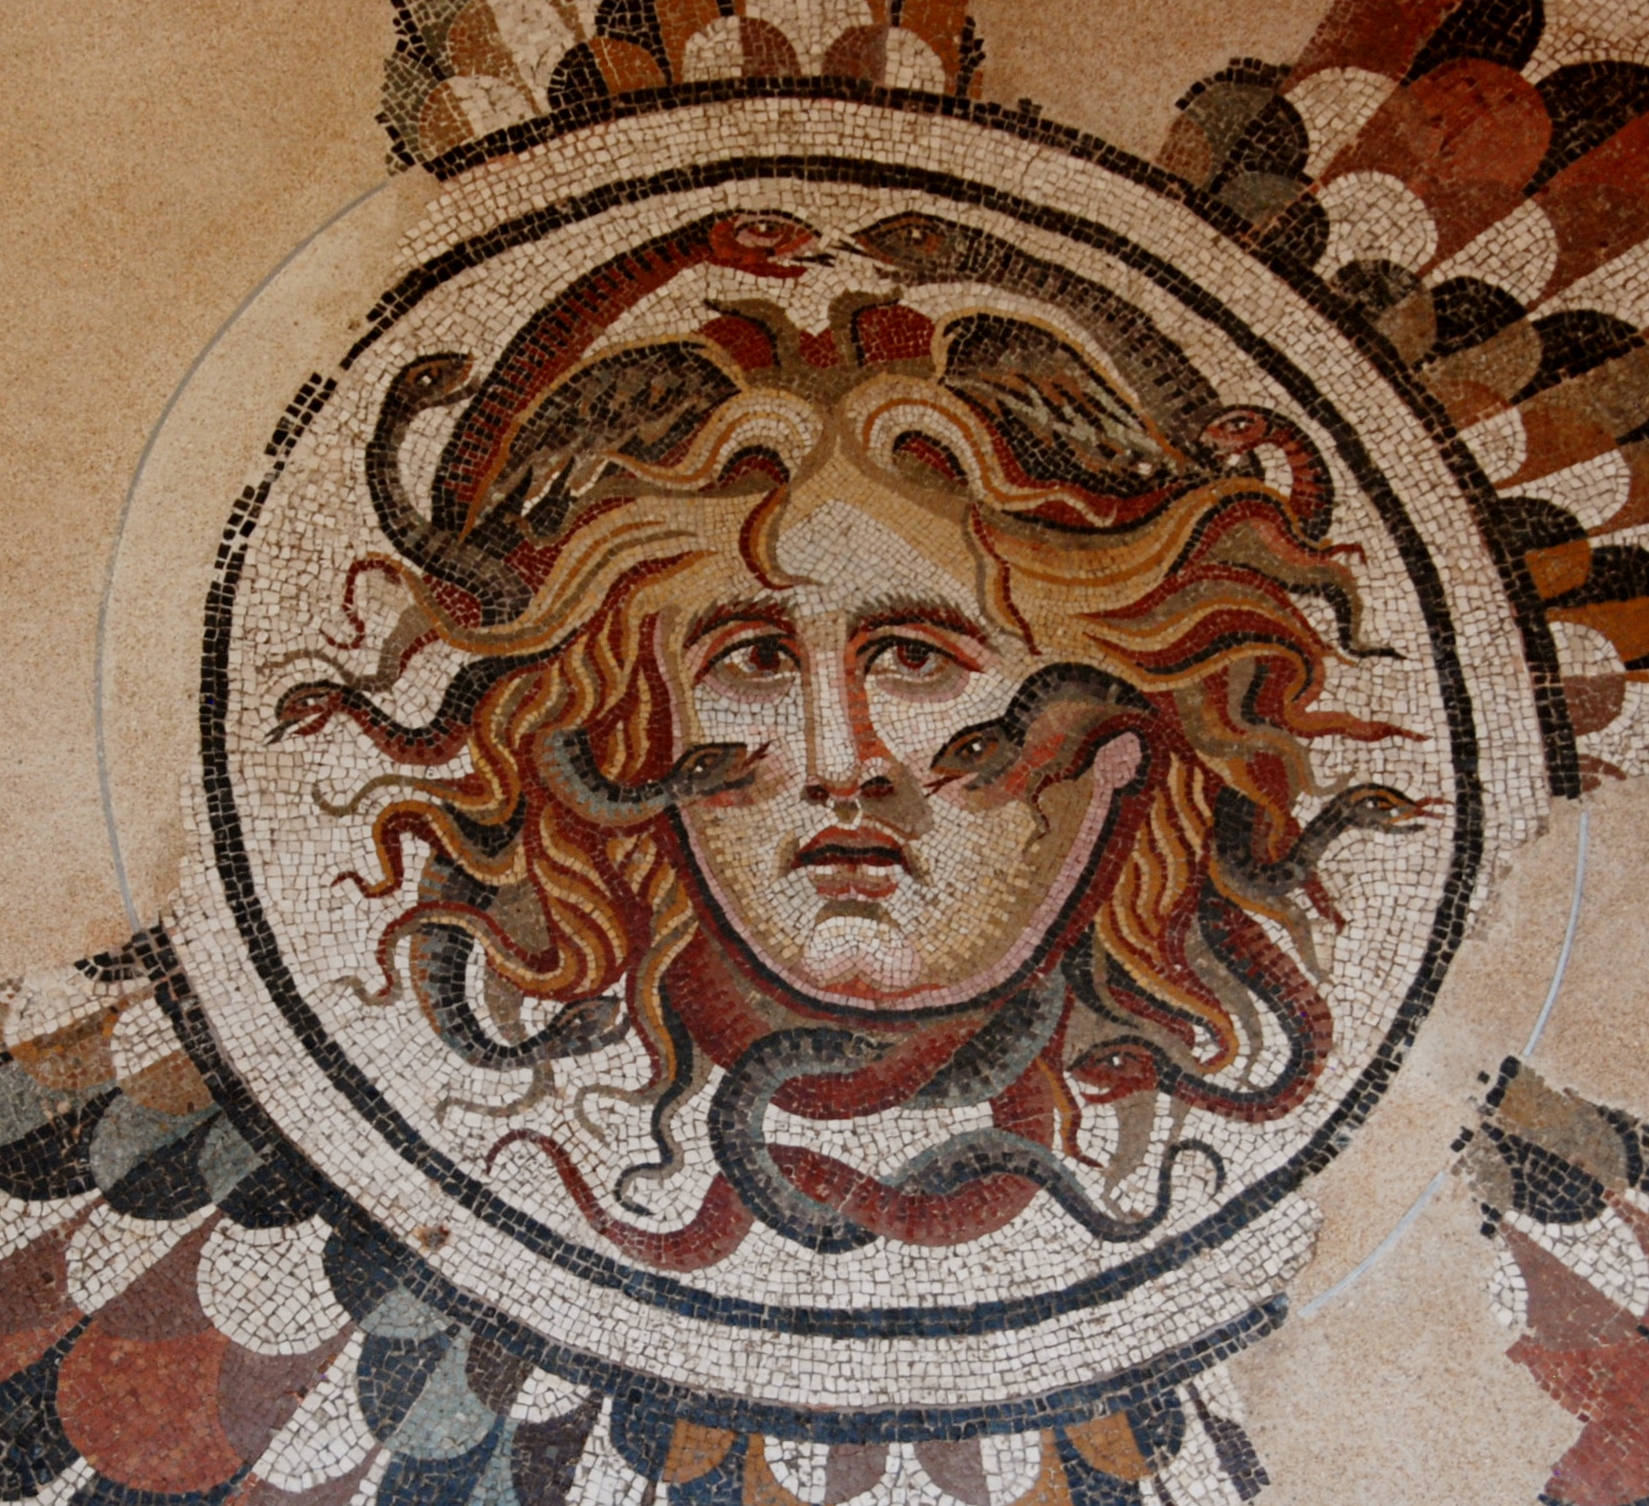 a large, spectacular floor mosaic of Medusa